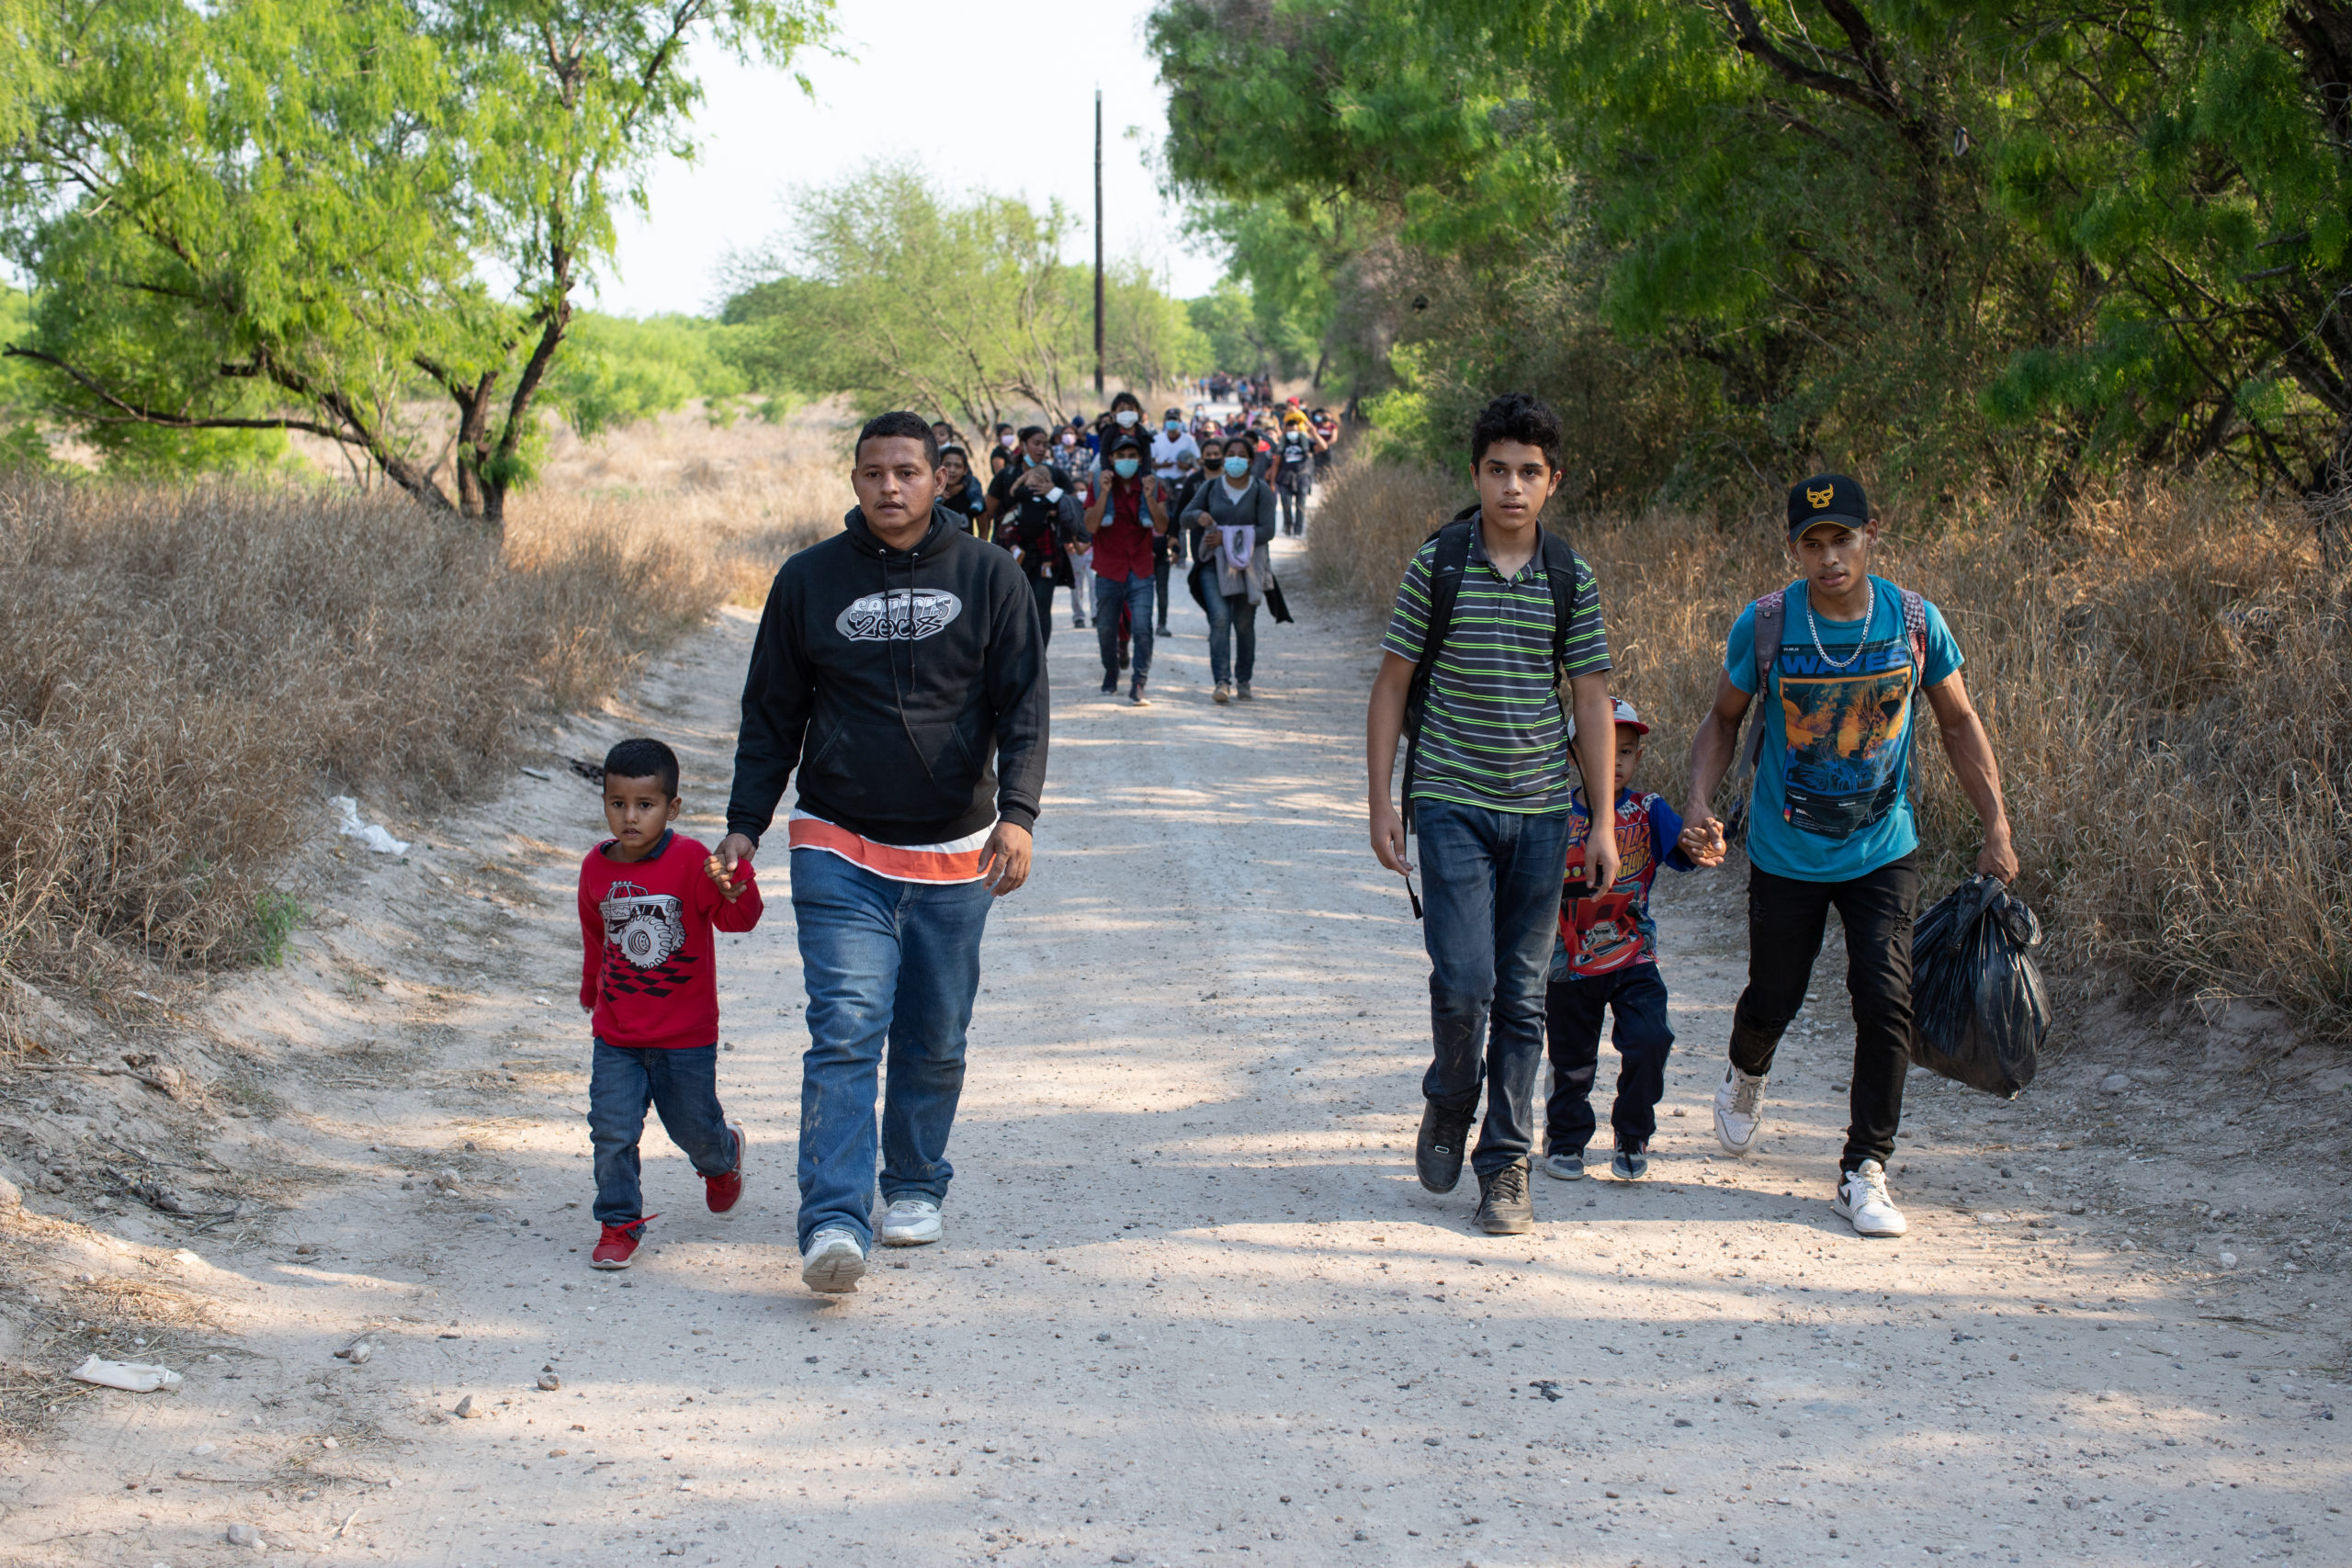 Illegal migrants cross through private land on their way to a Customs and Border Protection processing facility near Mission, Texas on March 25, 2021. (Kaylee Greenlee - Daily Caller News Foundation)